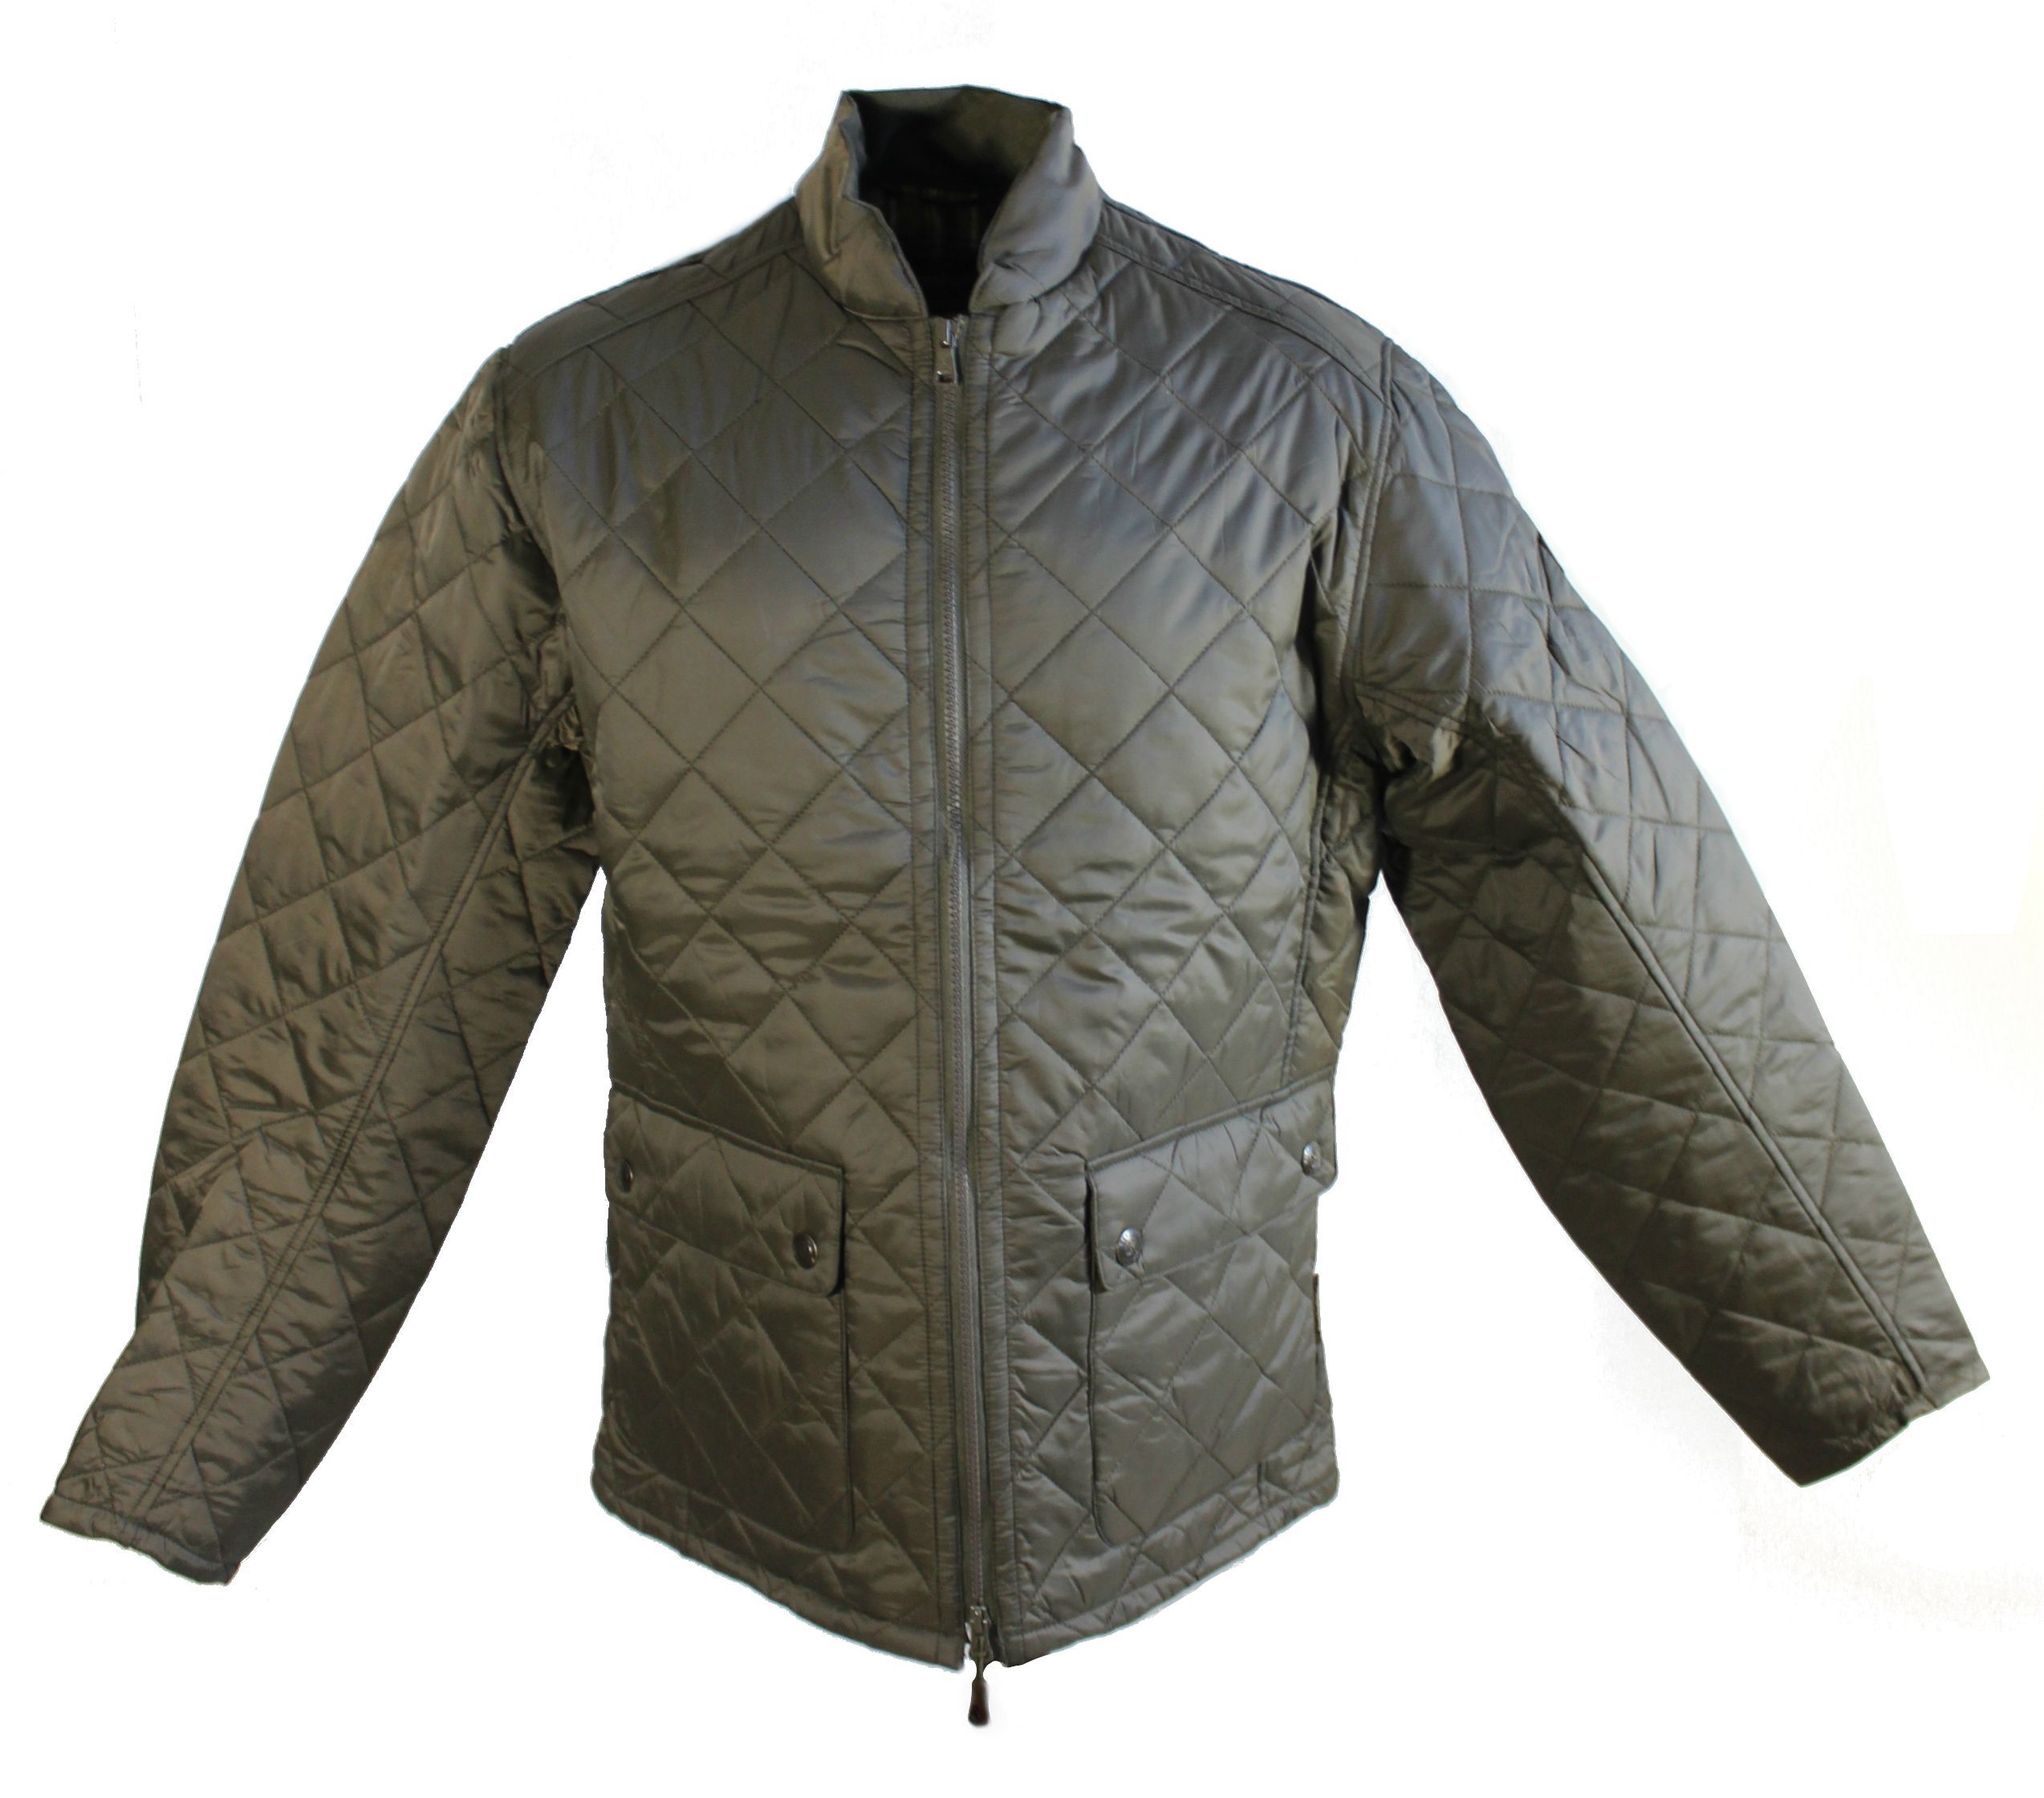 Куртка Remington Jaket Shaded olive, оливковый, р. L